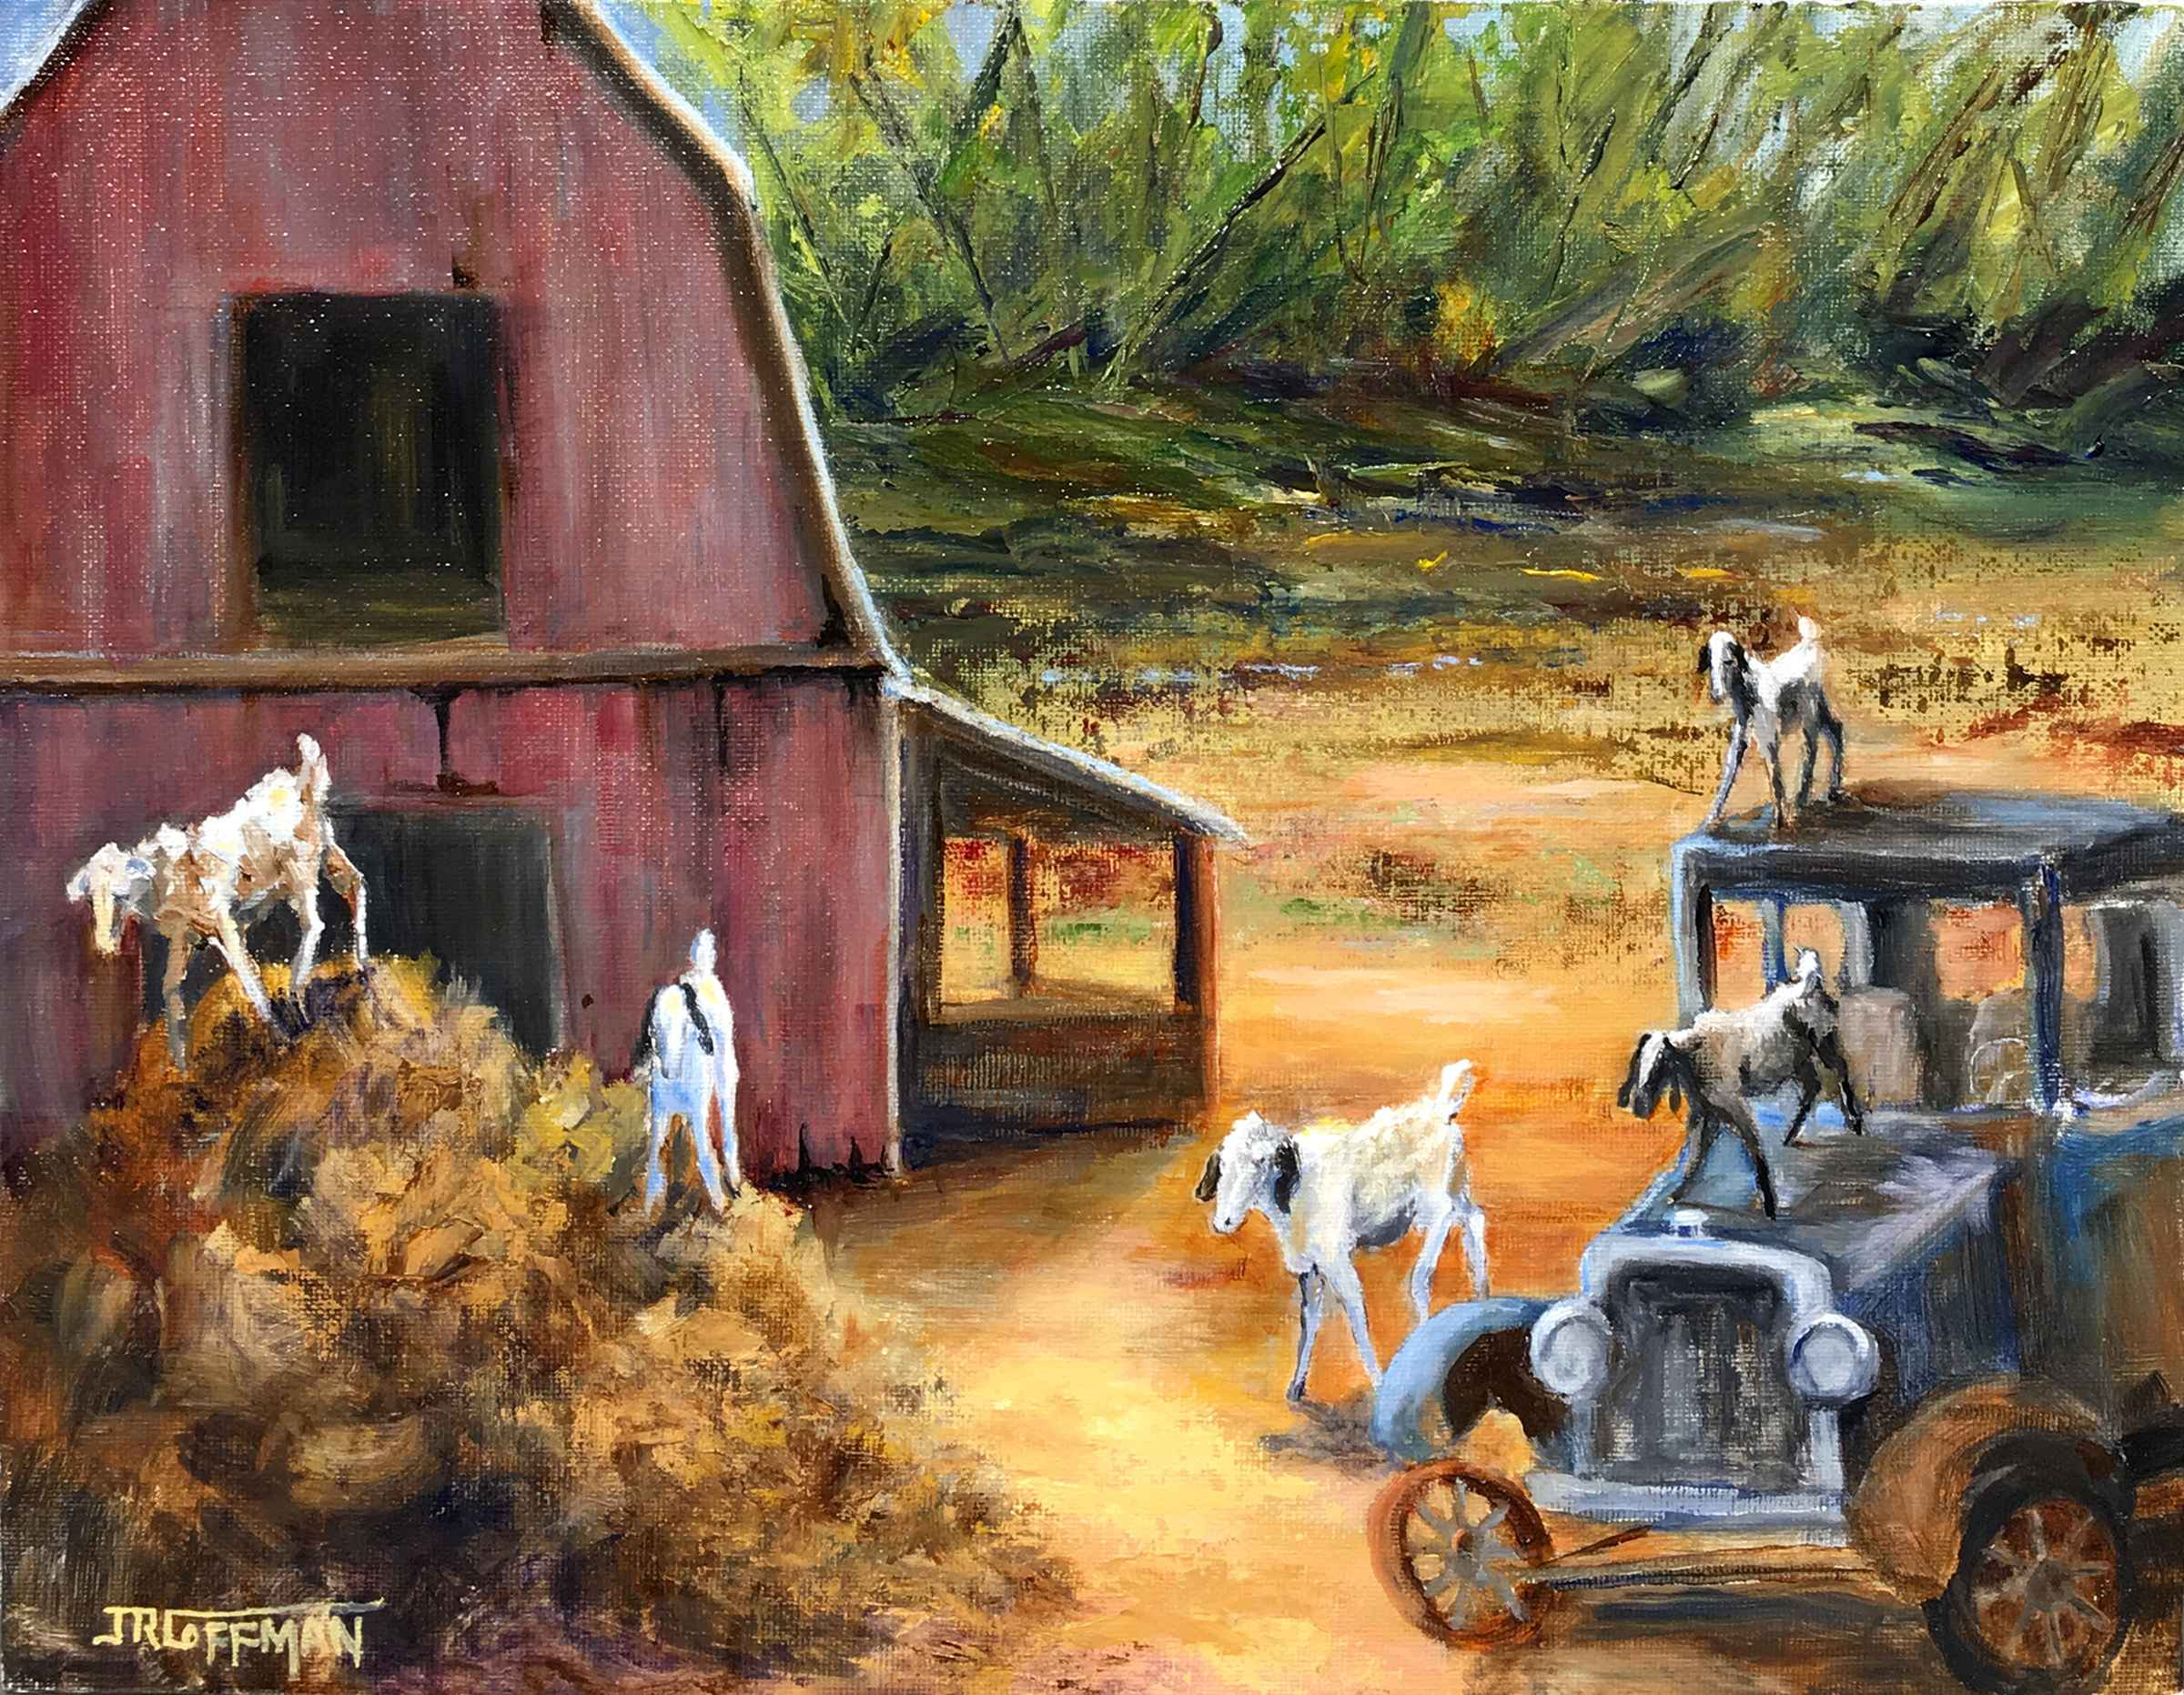 A Gathering of Goats by  Jim Coffman - Masterpiece Online